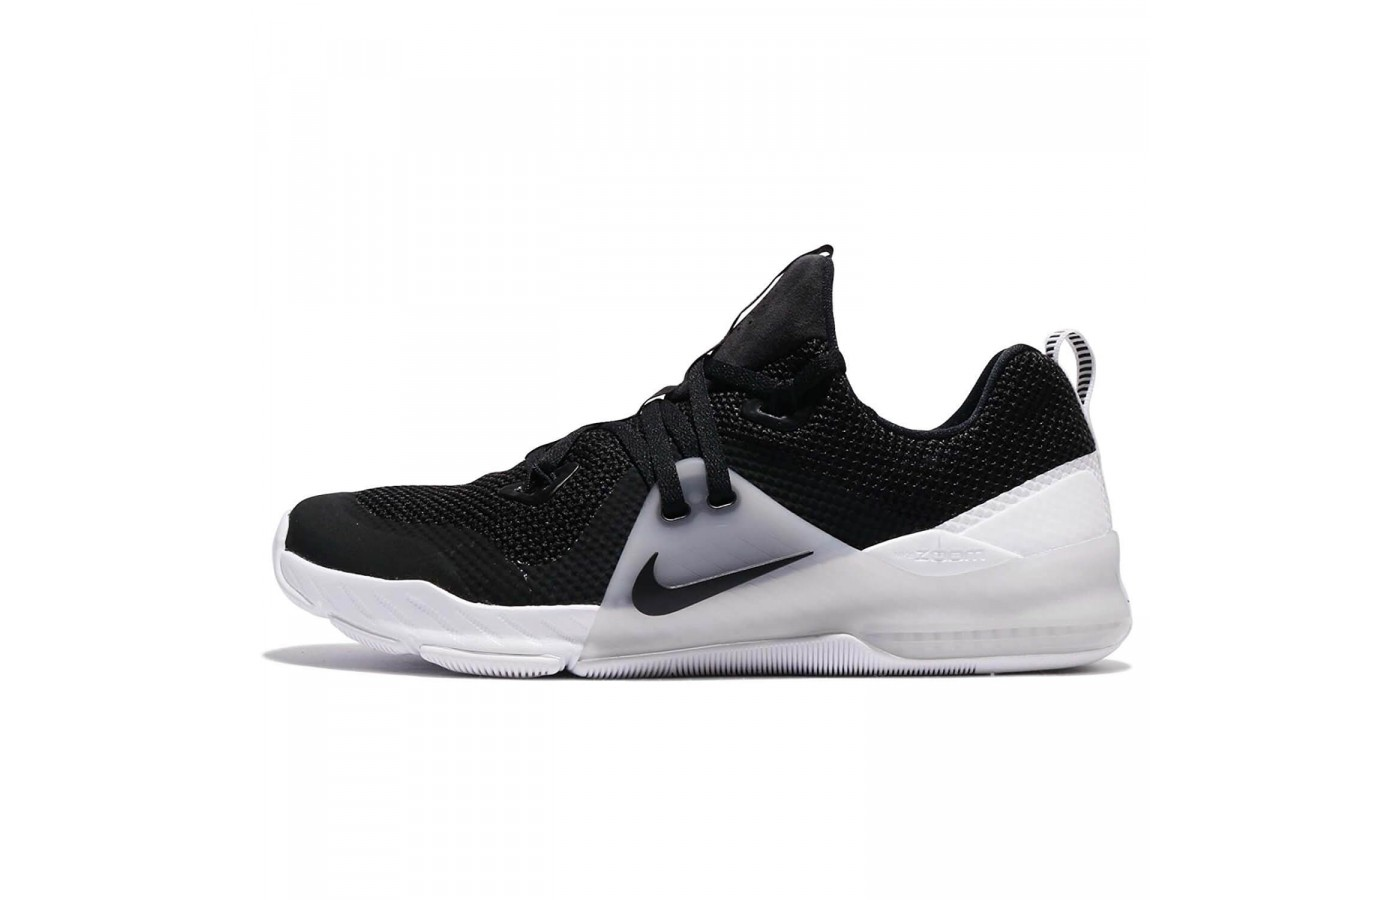 reputable site dacd6 d1fc7 Nike Zoom Train Command. Runners love the traditional Nike Zoom cushioning  in the midsole ...